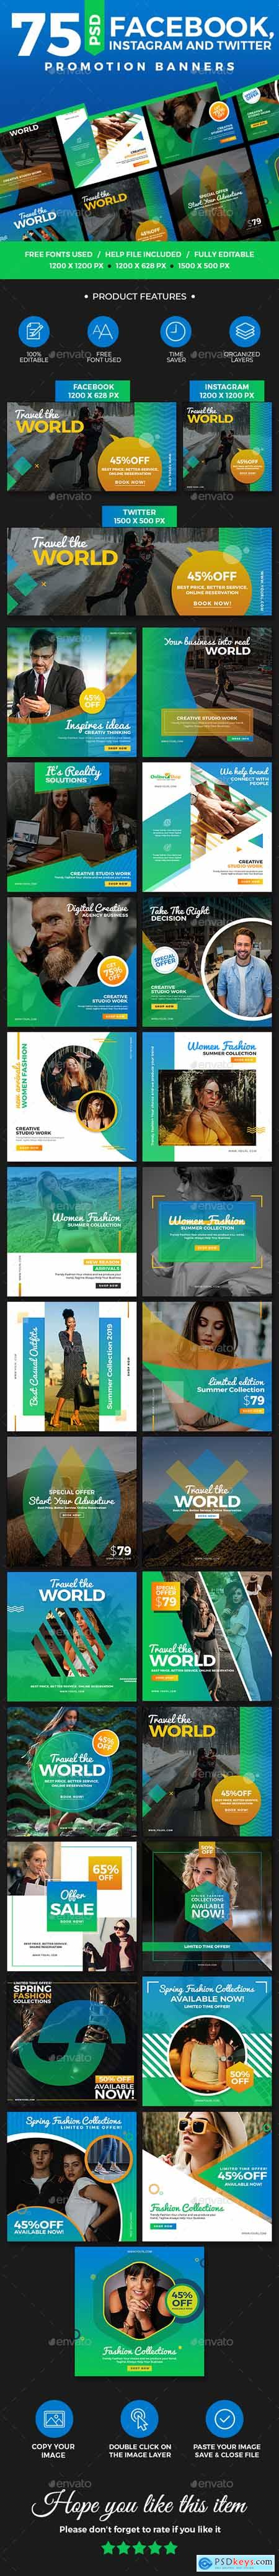 Graphicriver 75 Facebook, Instagram & Twitter Multipurpose Banners